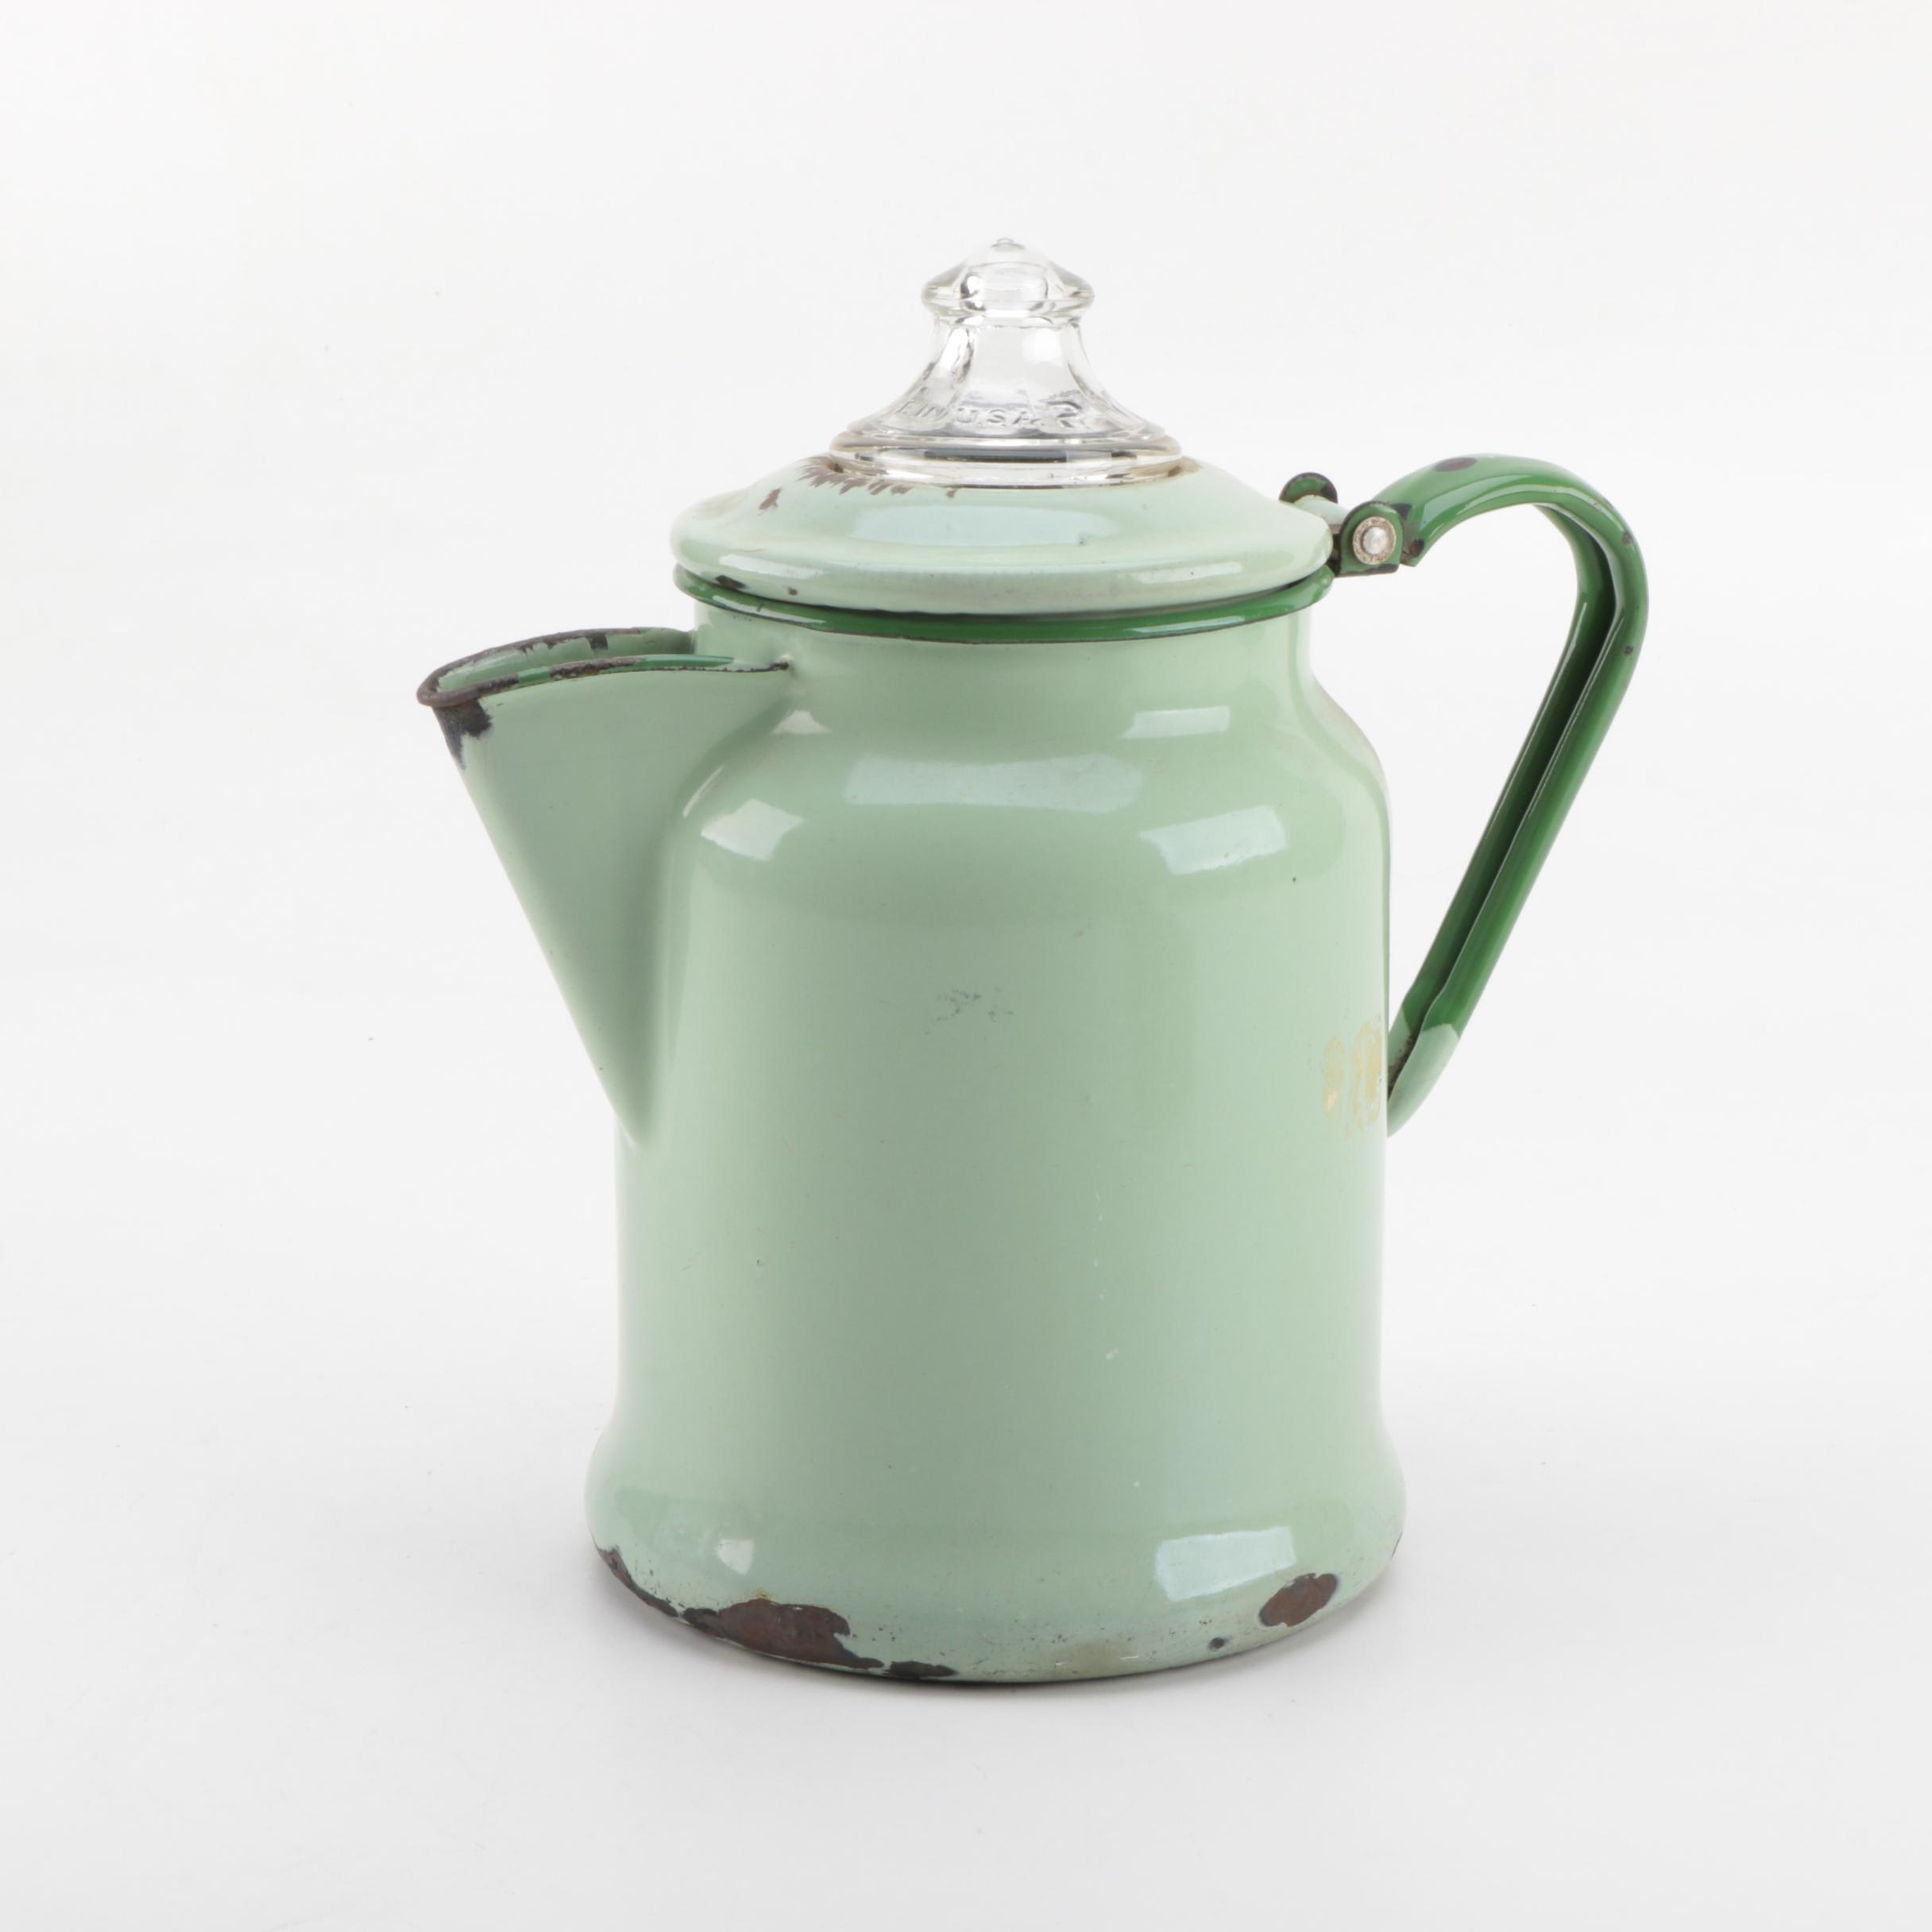 Vintage American Enamel Metal Coffee Pot